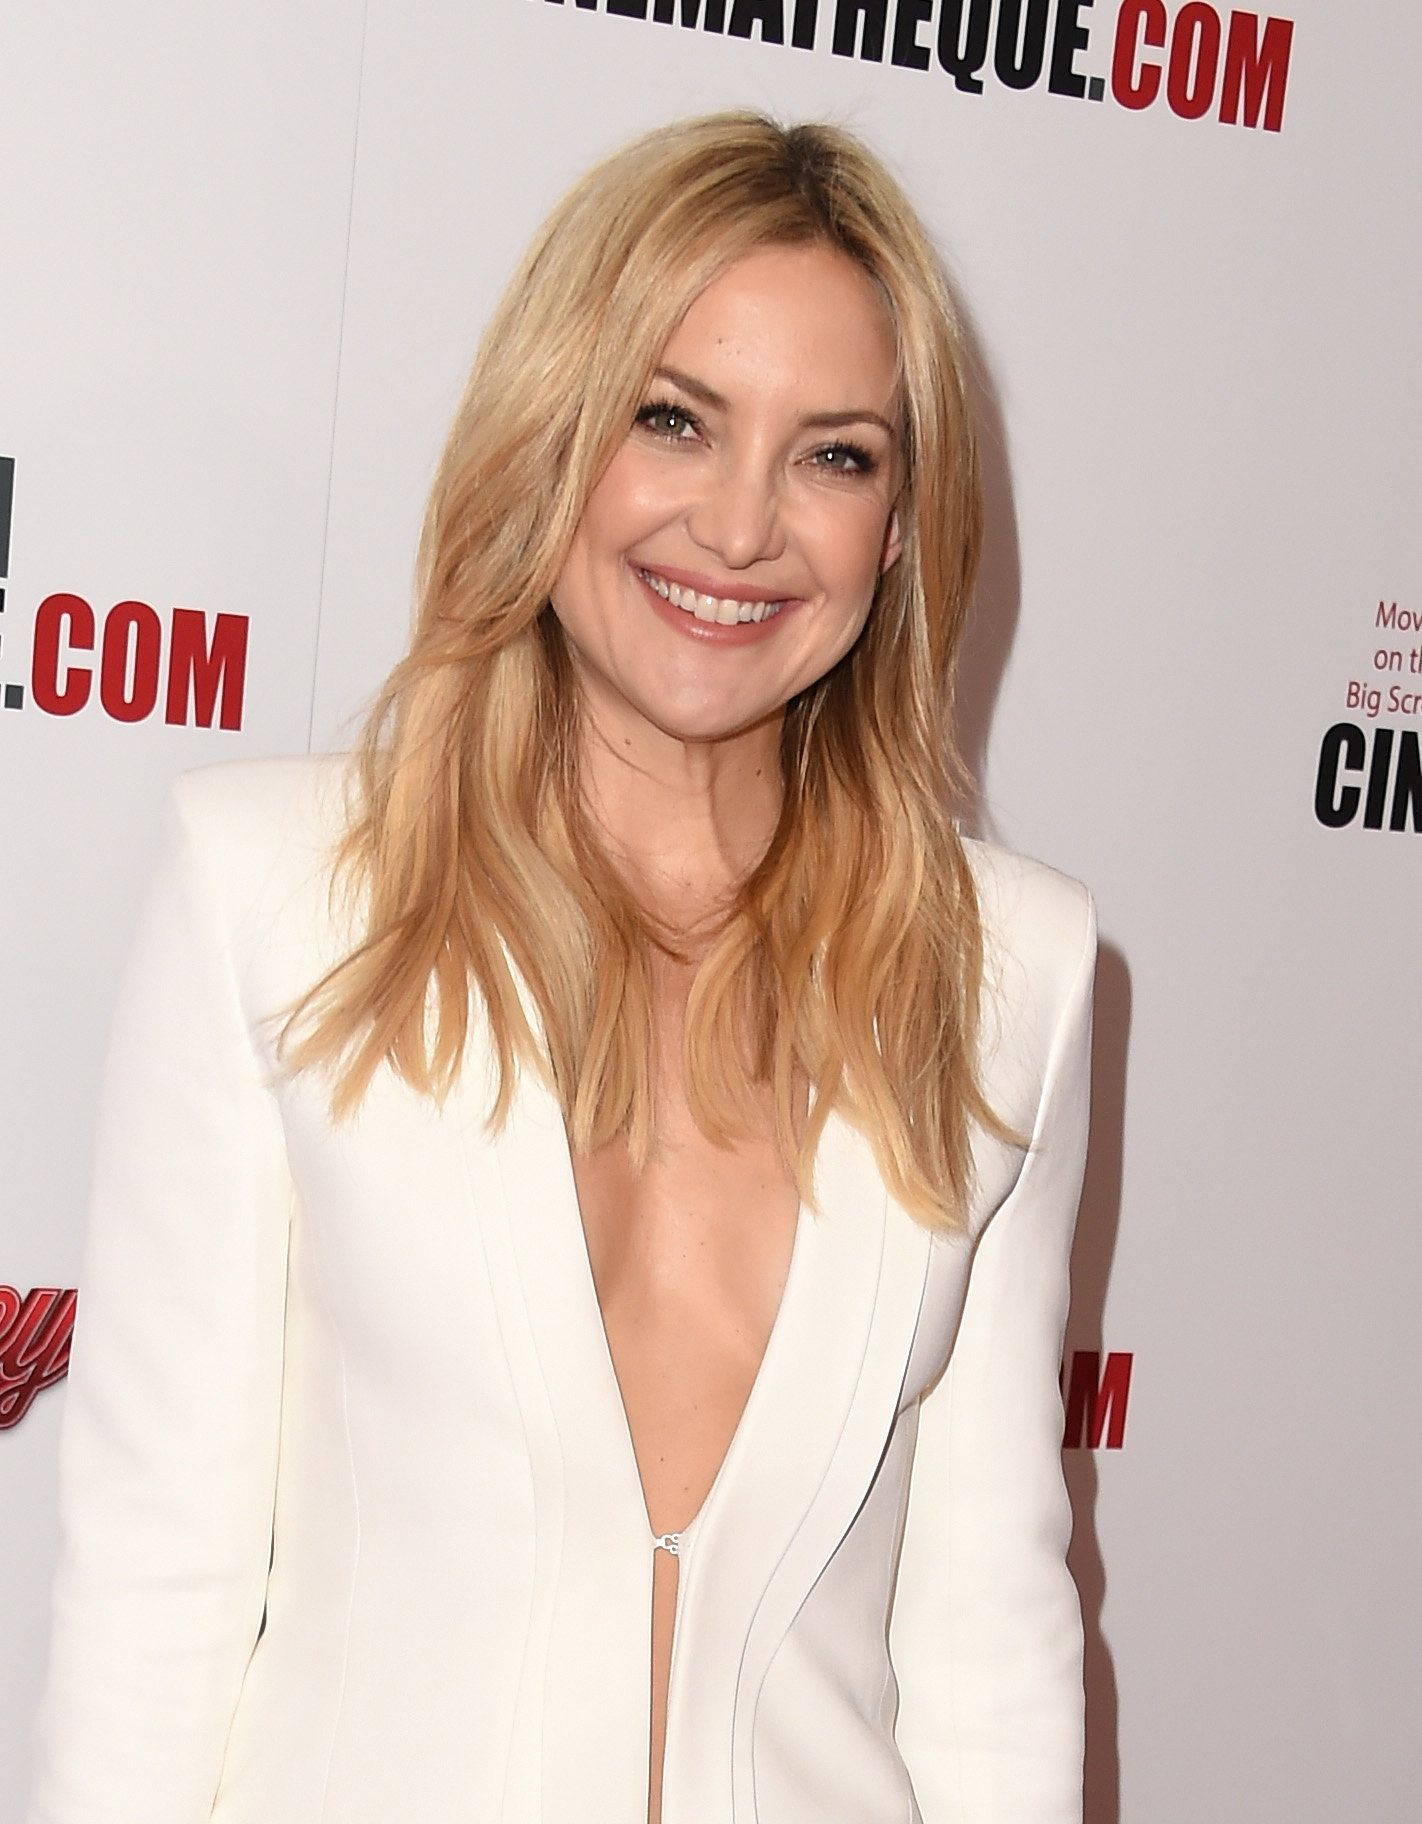 LOS ANGELES, CA - OCTOBER 30:  Actress Kate Hudson attends the 29th American Cinematheque Award honoring Reese Witherspoon at the Hyatt Regency Century Plaza on October 30, 2015 in Los Angeles, California.  (Photo by Steve Granitz/WireImage)